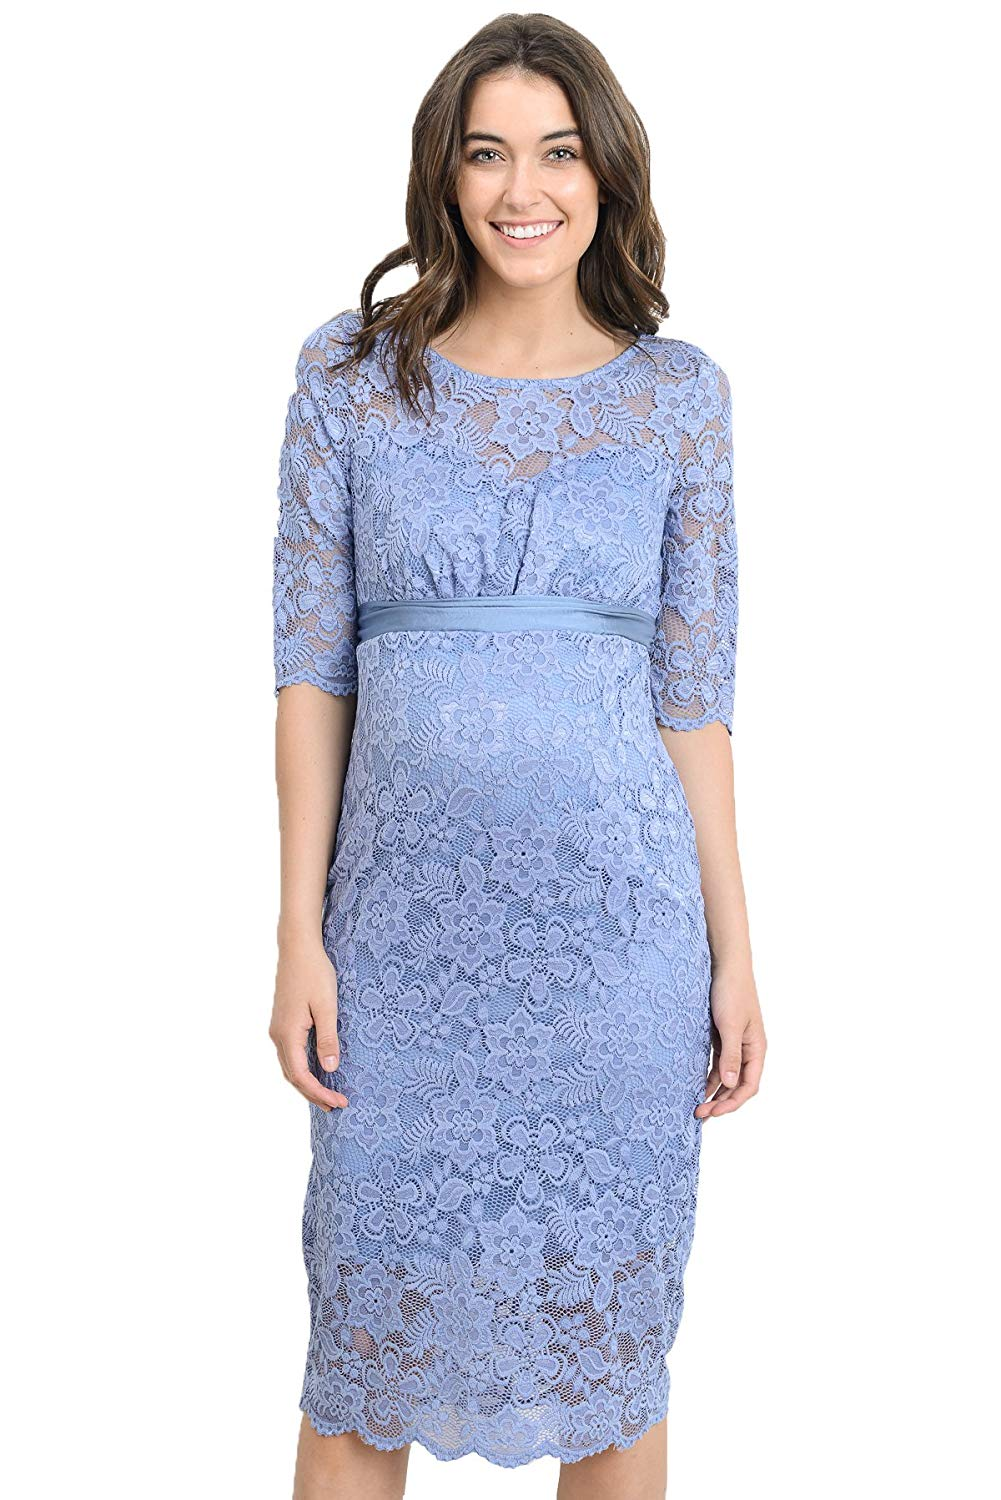 Blue Floral Lace Baby Shower Dress